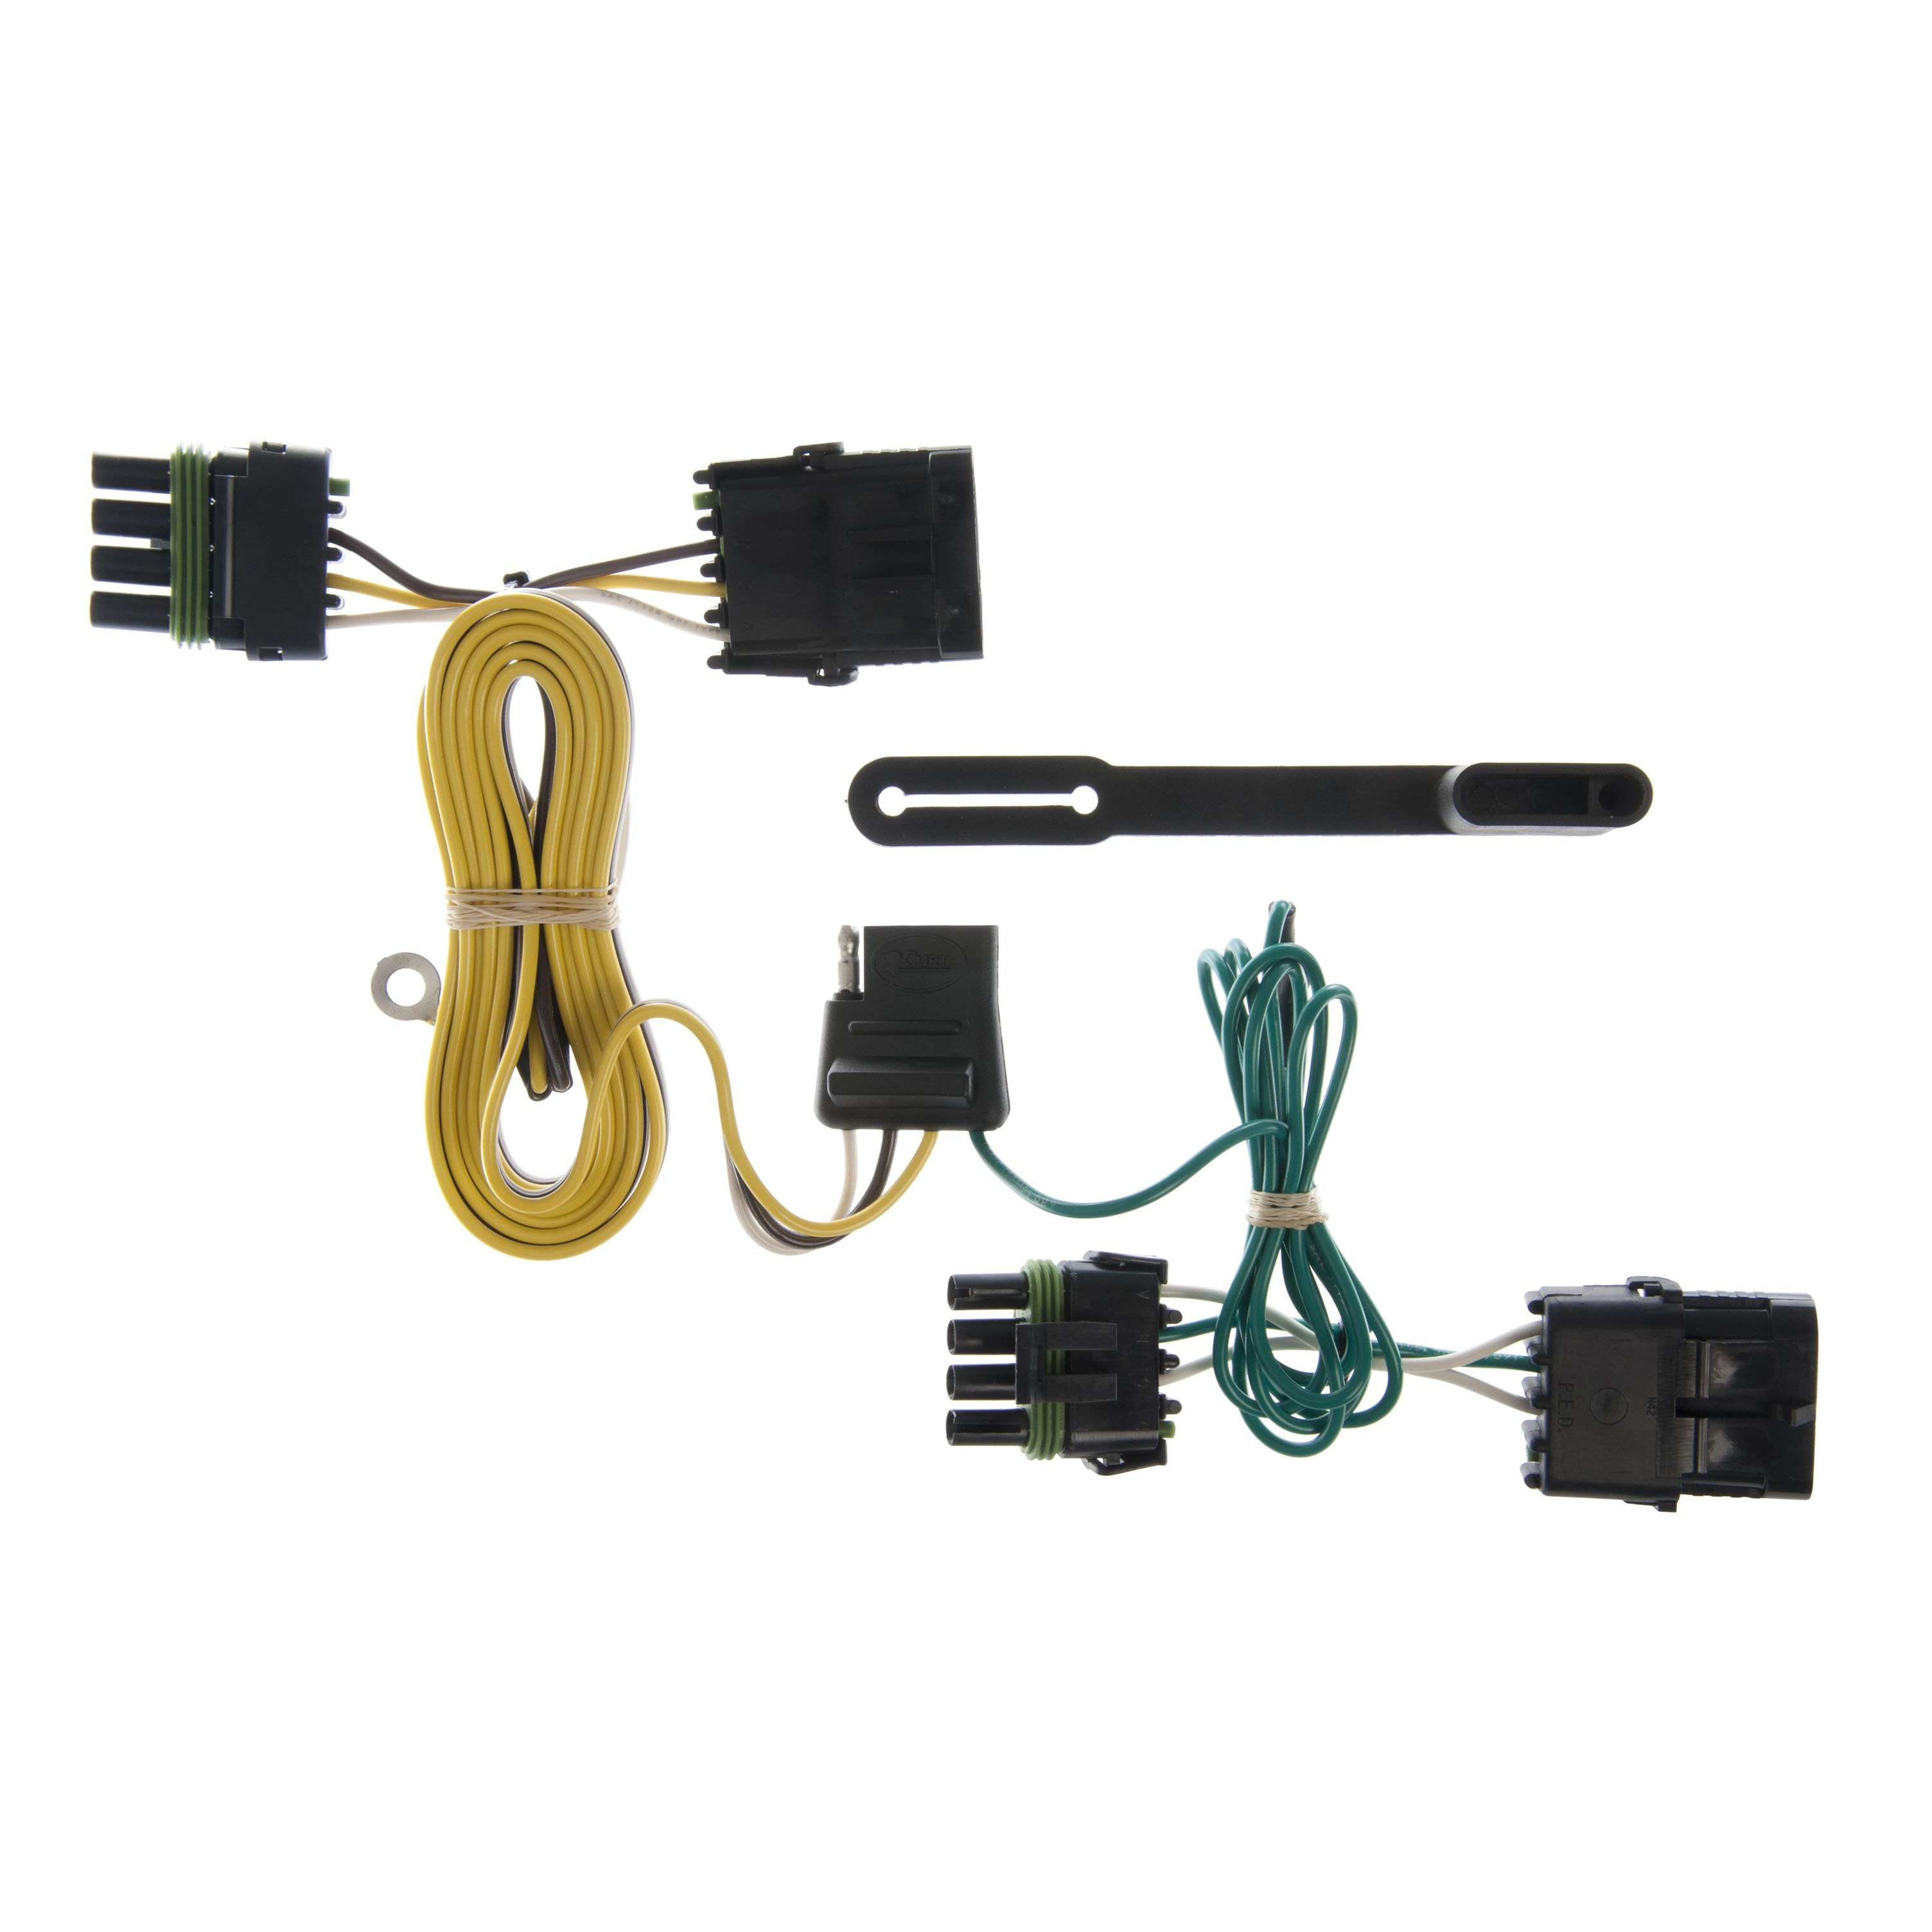 curt custom vehicle-to-trailer wiring harness 55356 for 1991-1997 jeep  wrangler